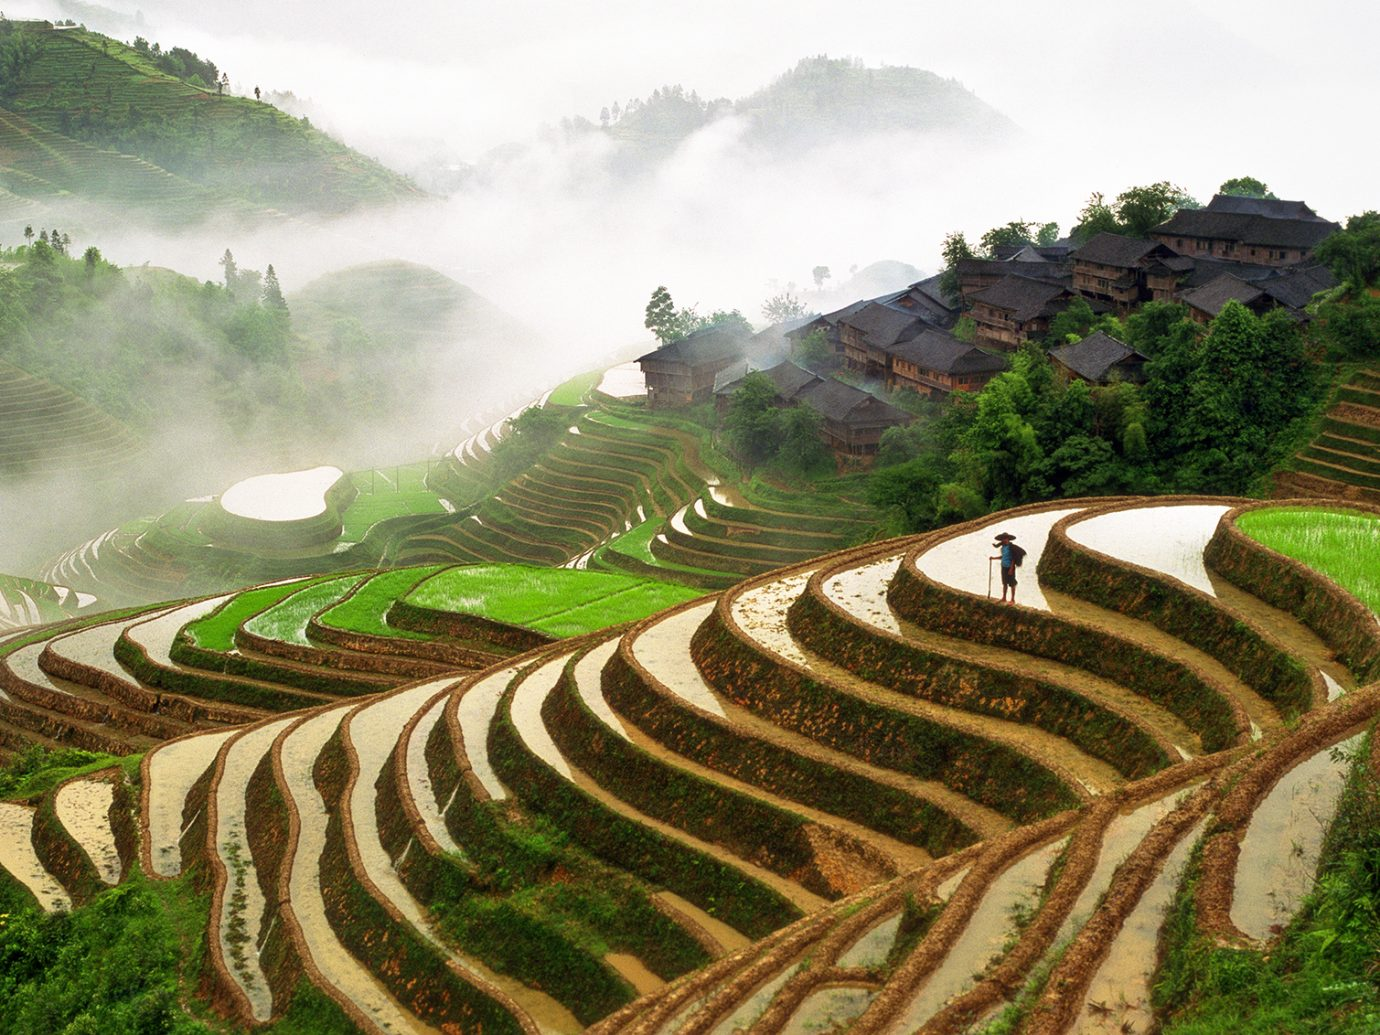 Rice Terraces and farming village in Longsheng, Guangxi province, China.